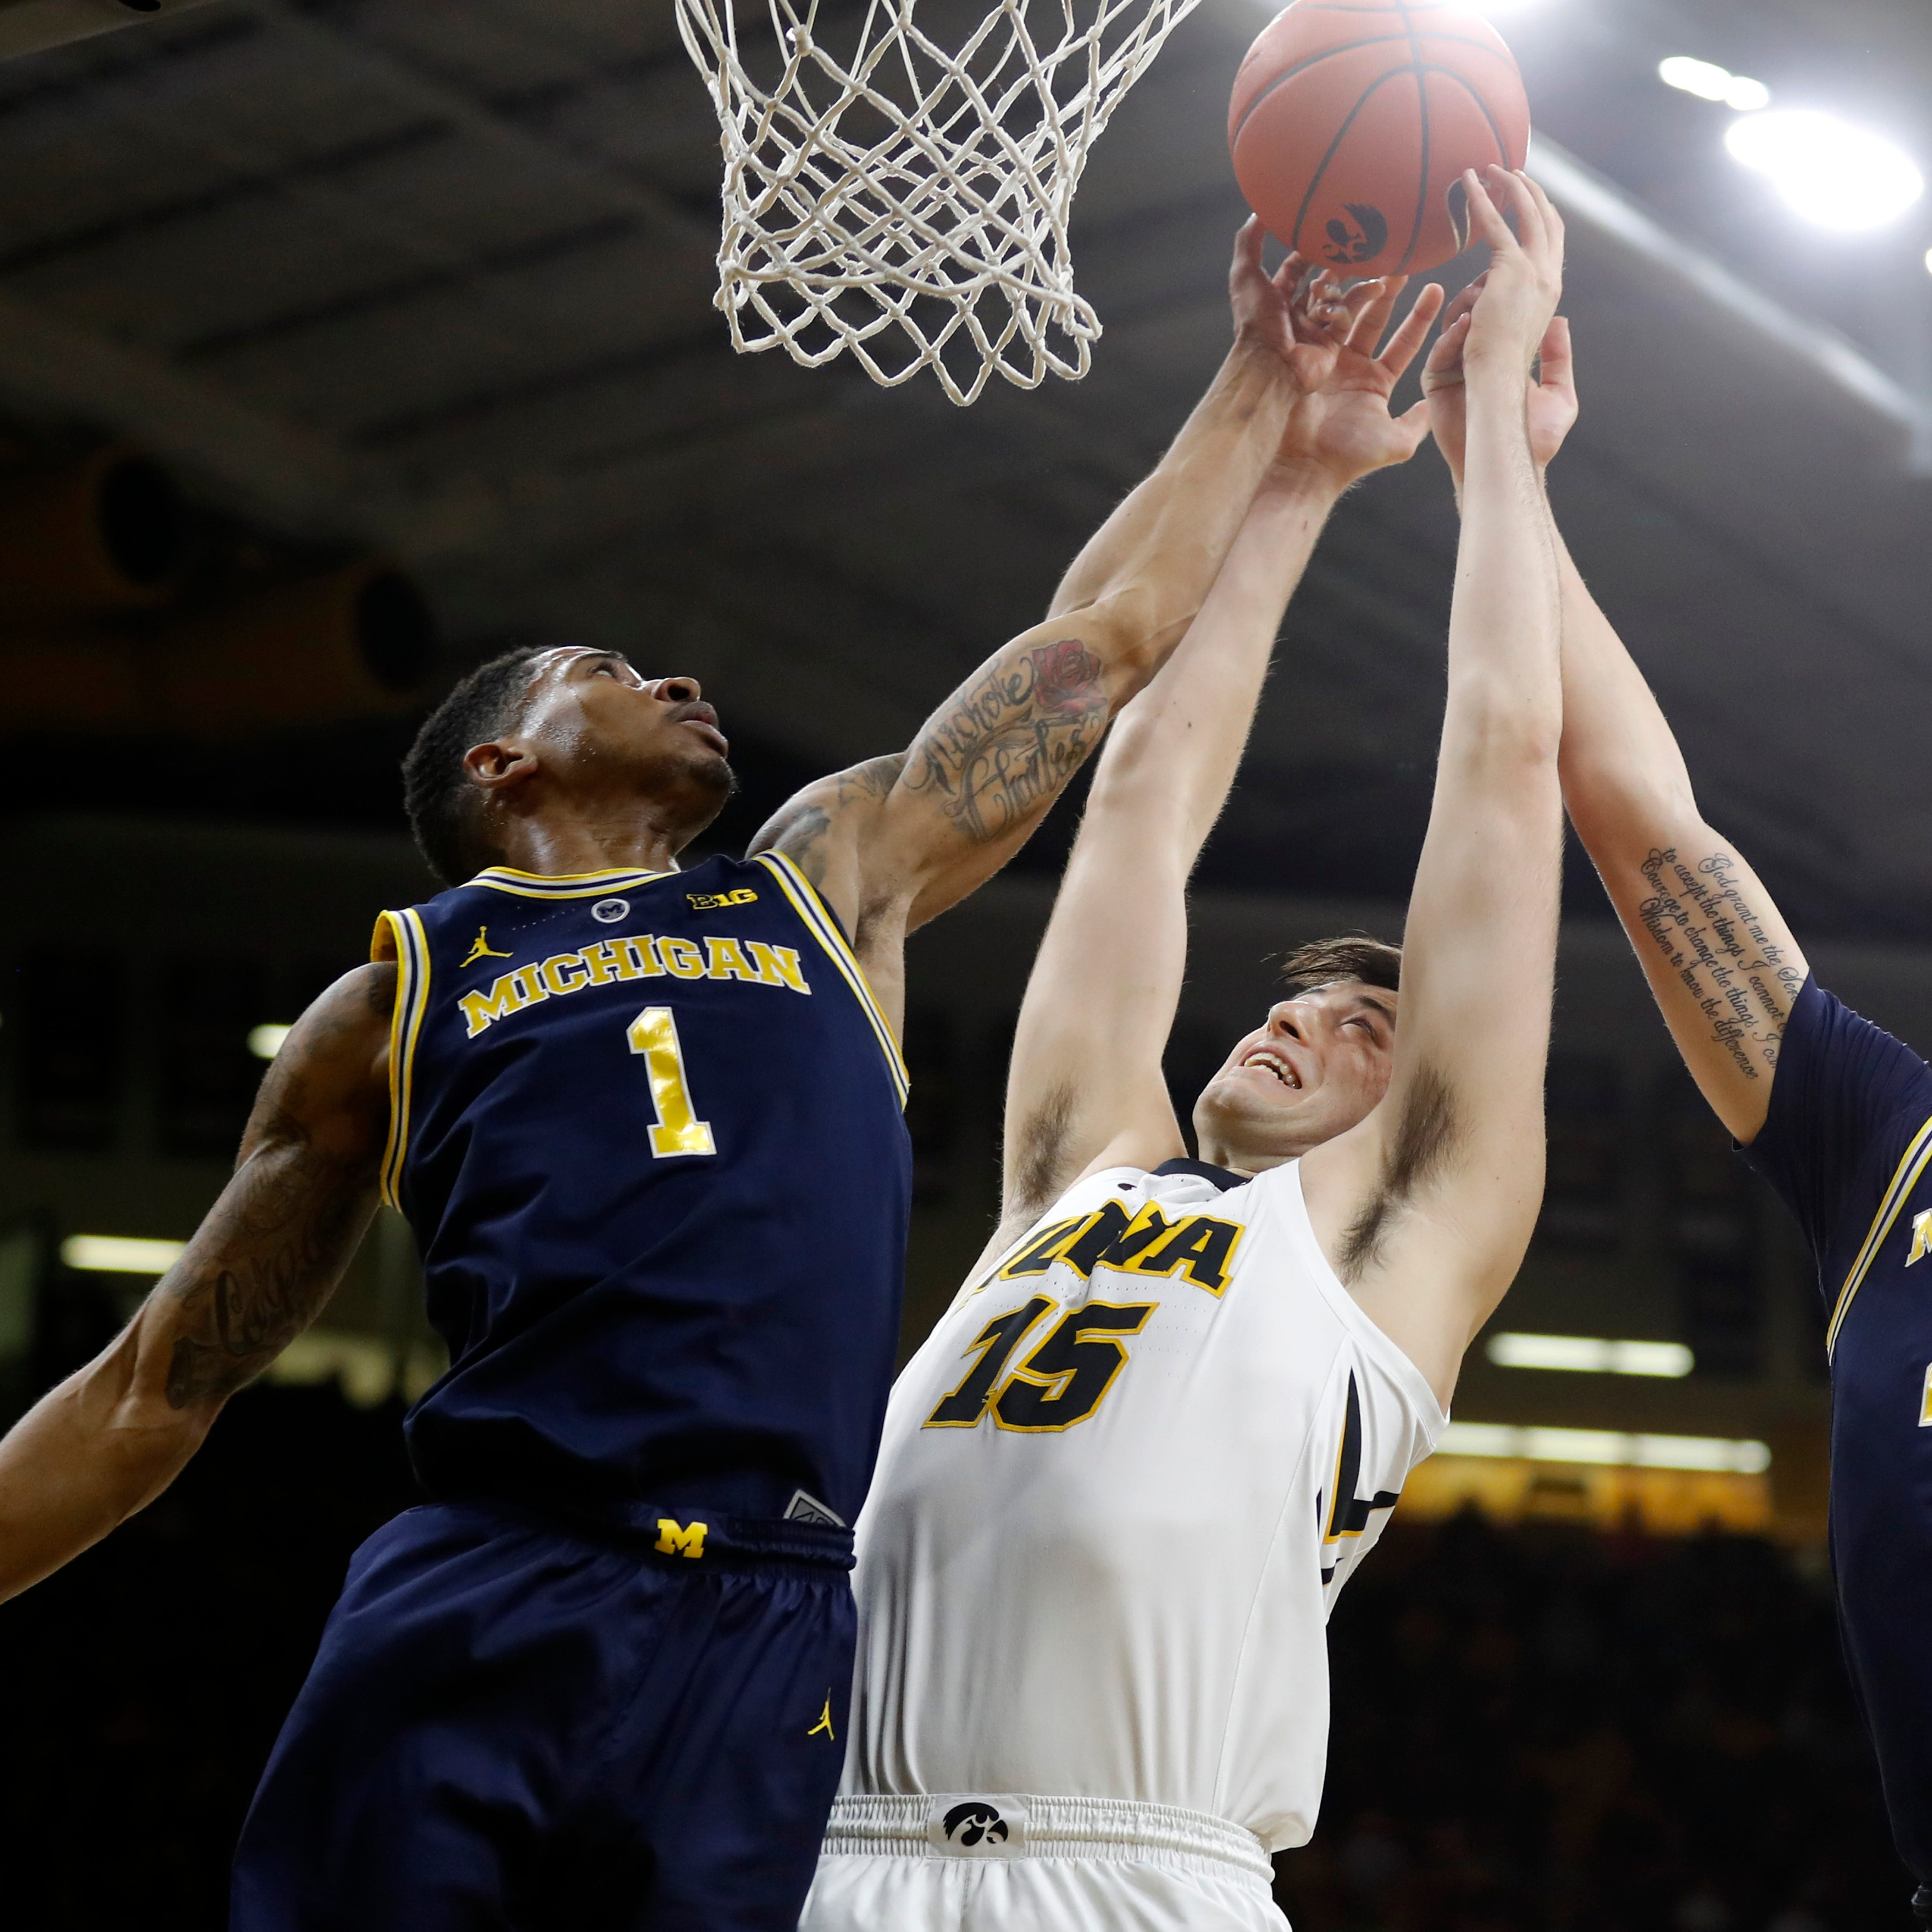 Beilein on Matthews snub: 'People are watching different game than I'm watching'